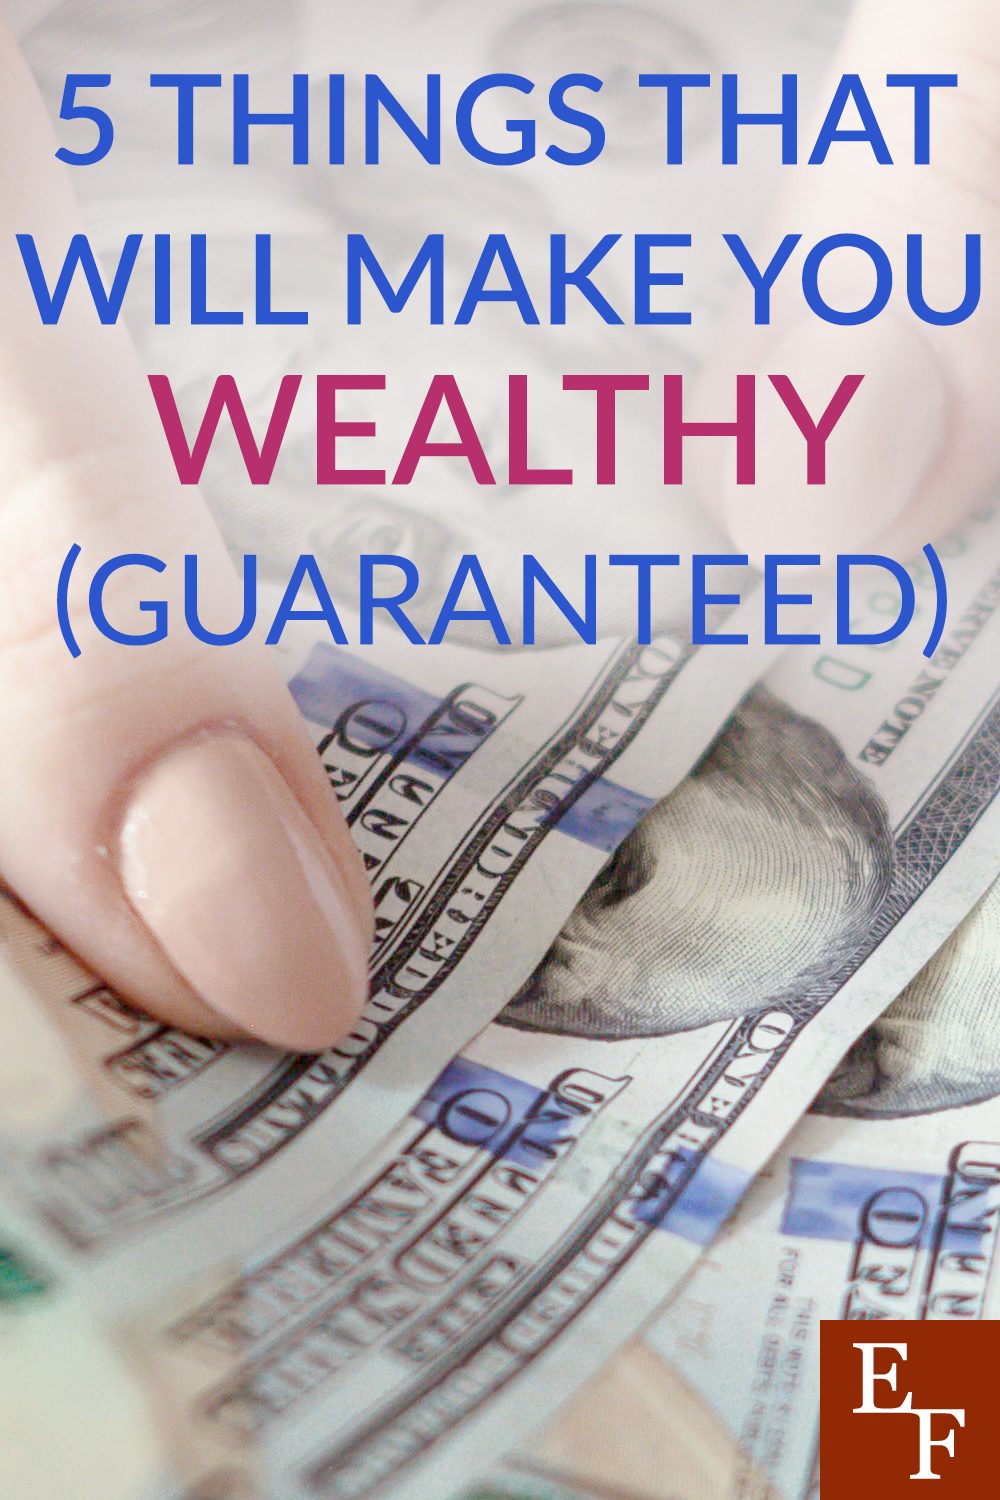 5 Things That Will Make You Wealthy (Guaranteed